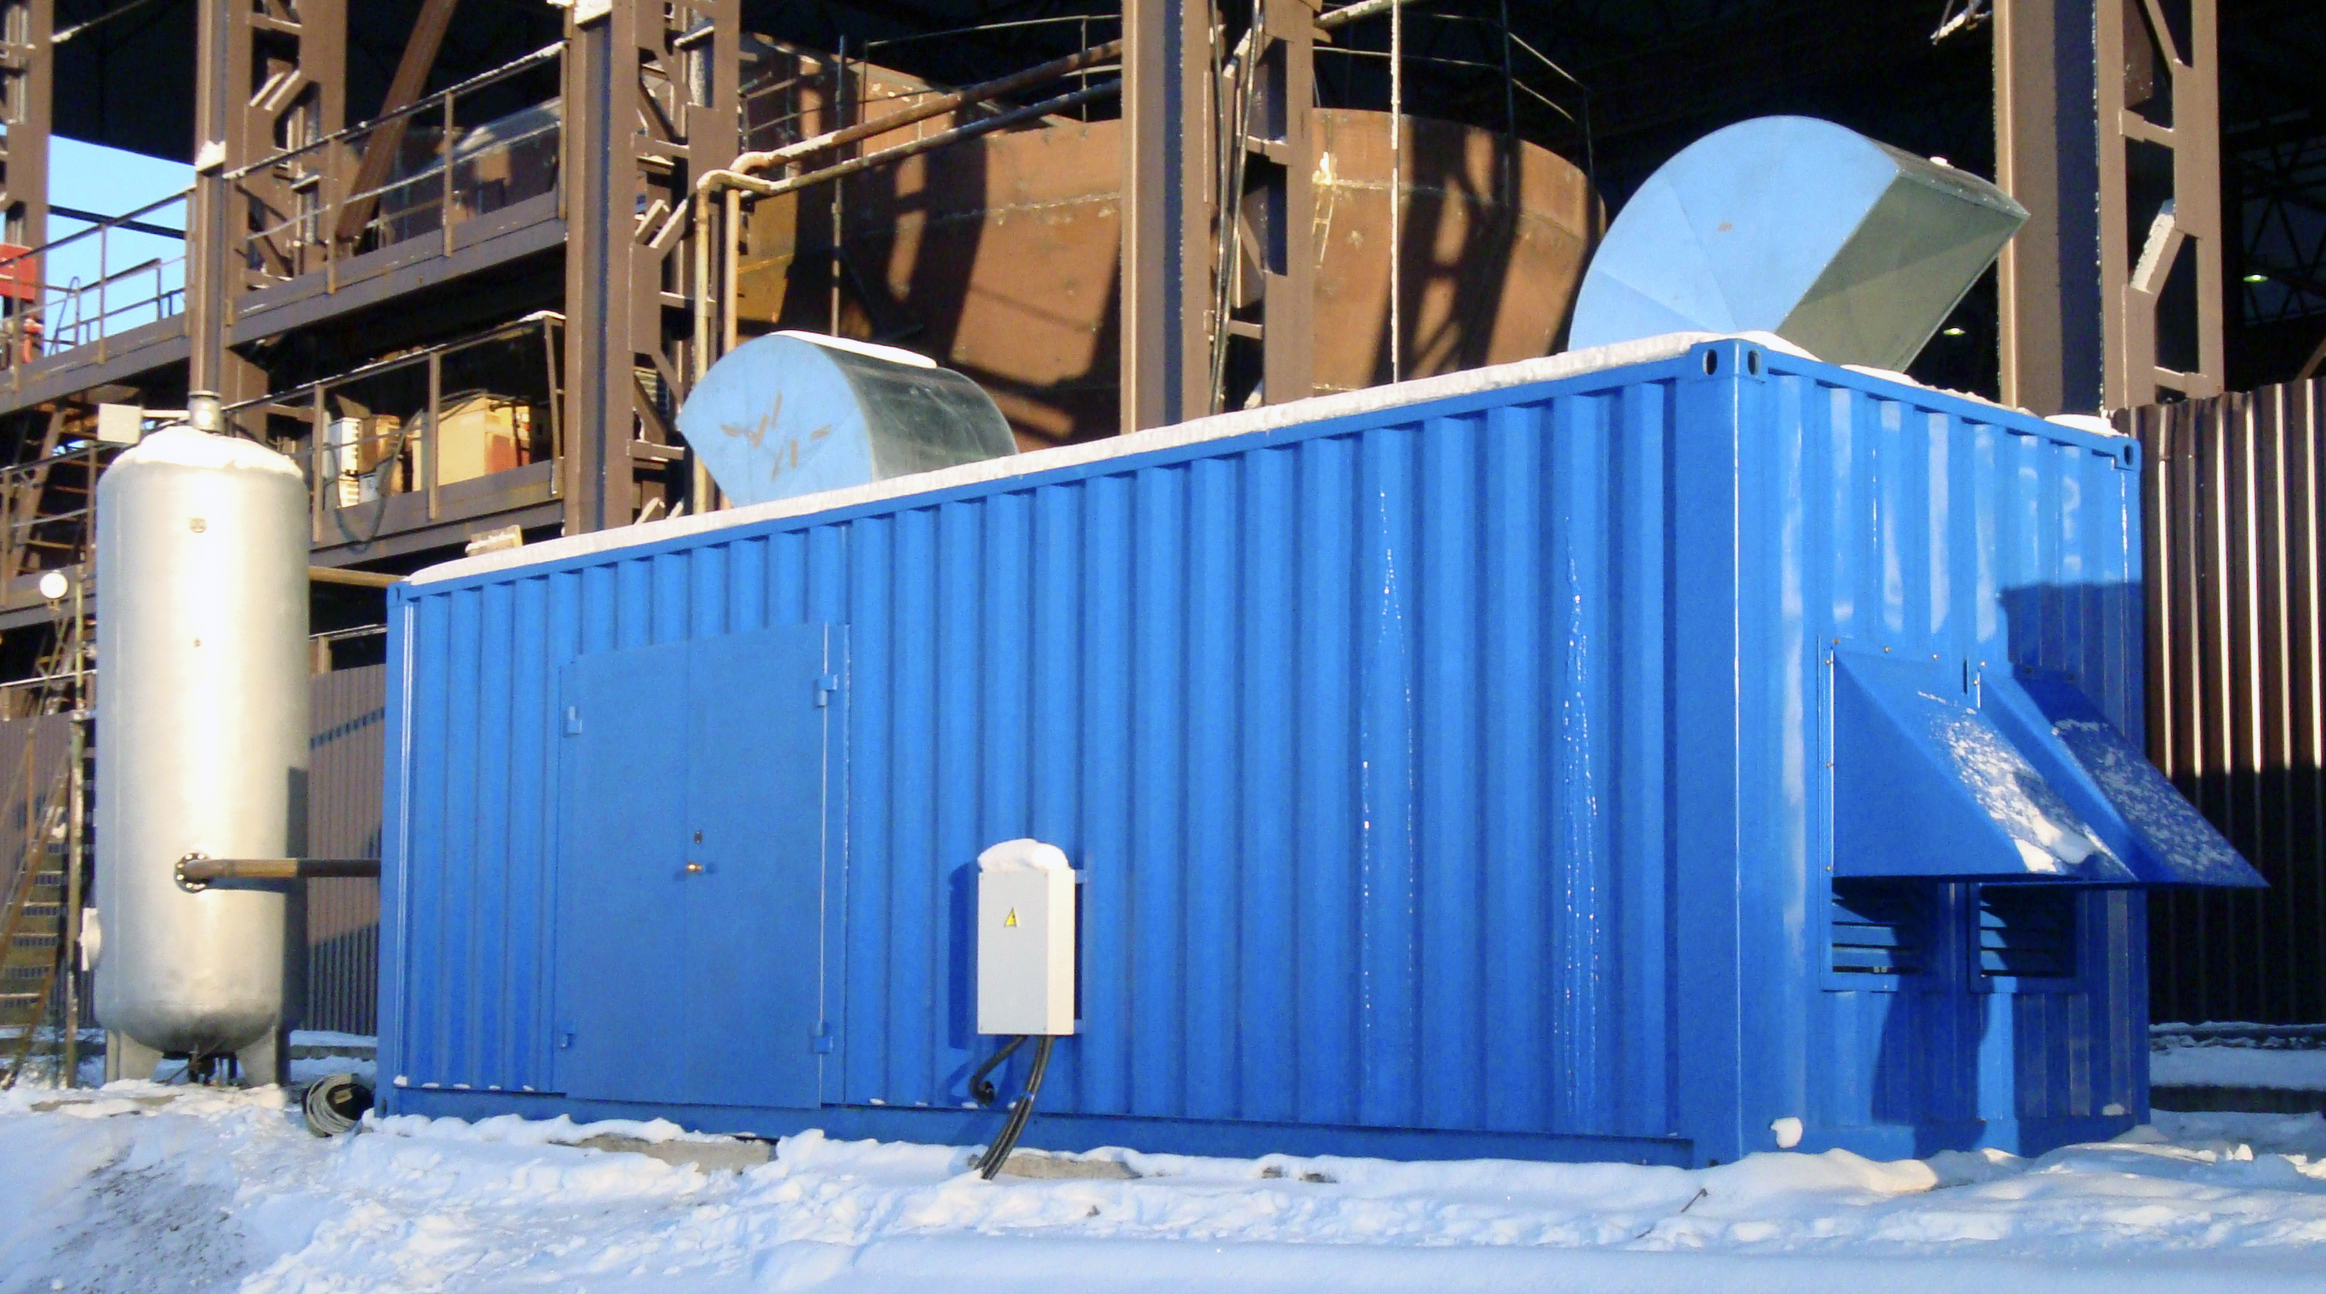 N2_container